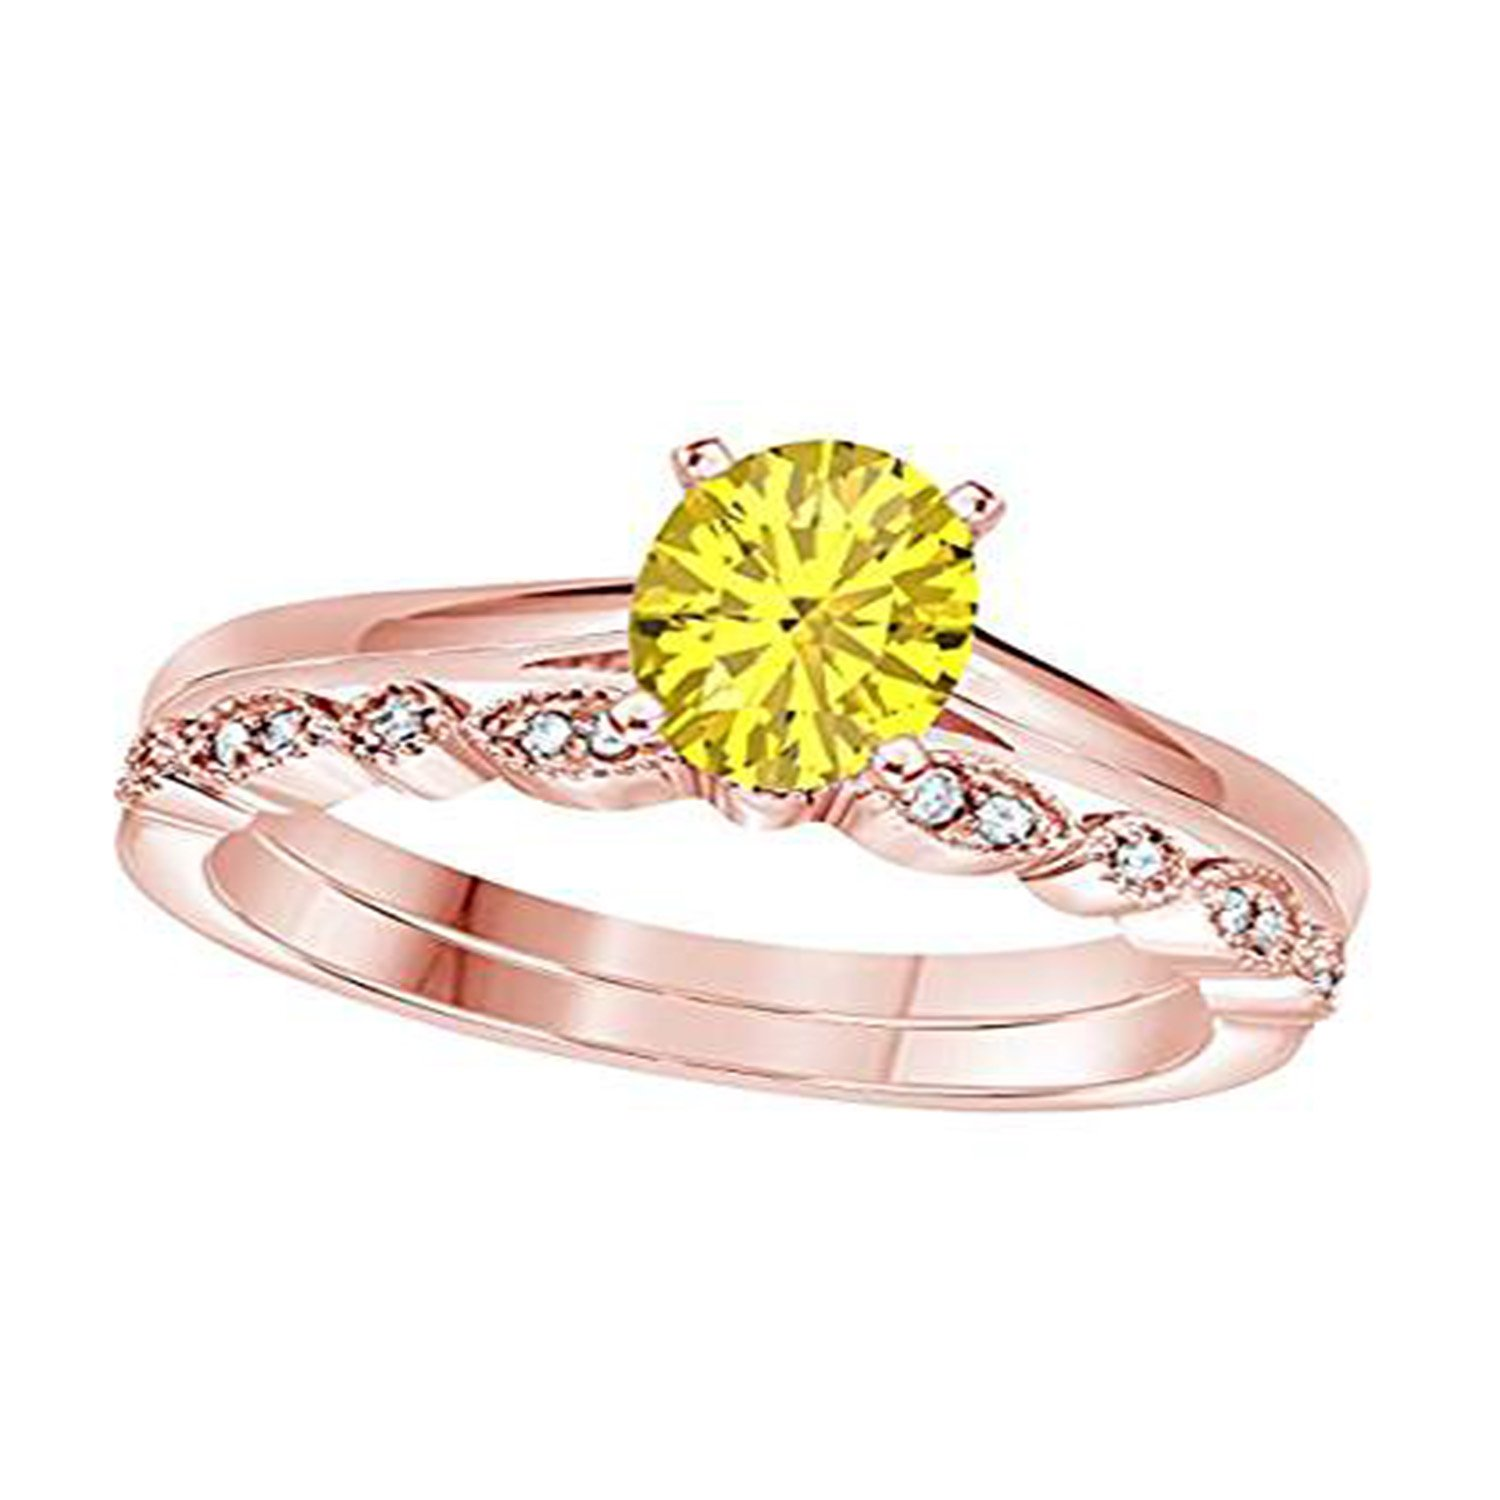 Silverraj Jewels 14K Rose Gold Plated Round Yellow Simulated Diamond Studded Wedding /& Engagement Ring Jewelry/…